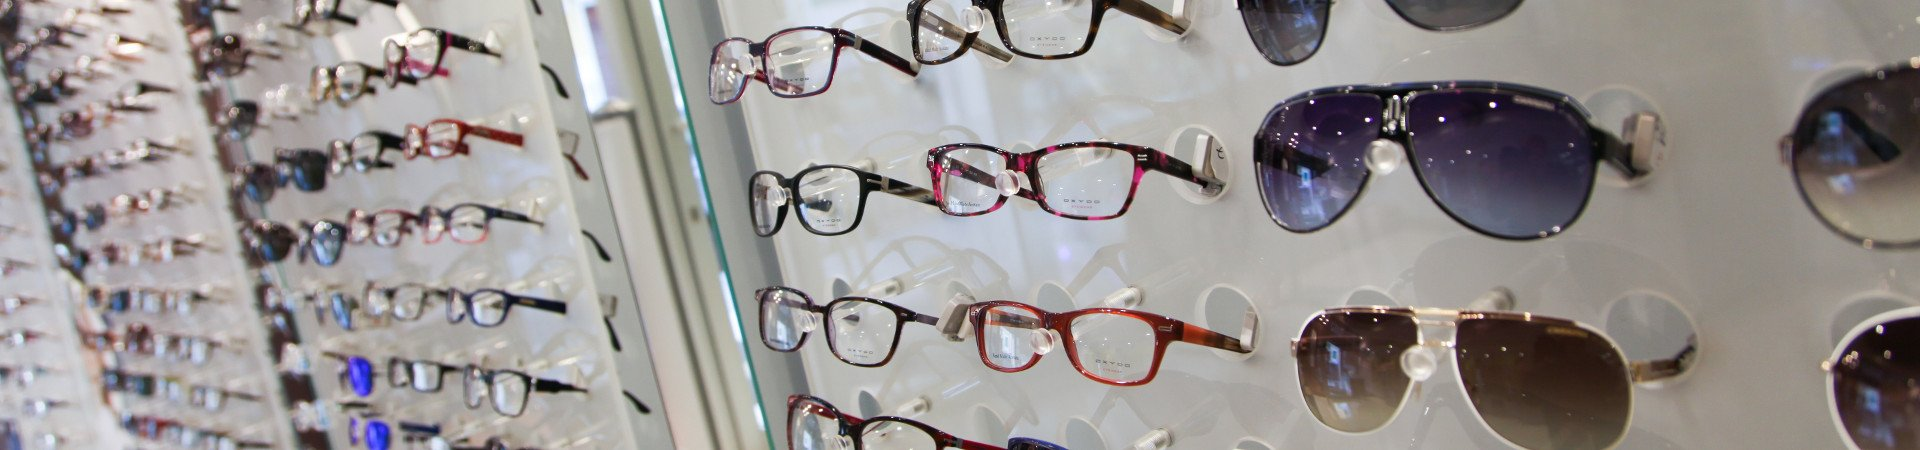 Display of glasses from the Ottica Brigida store